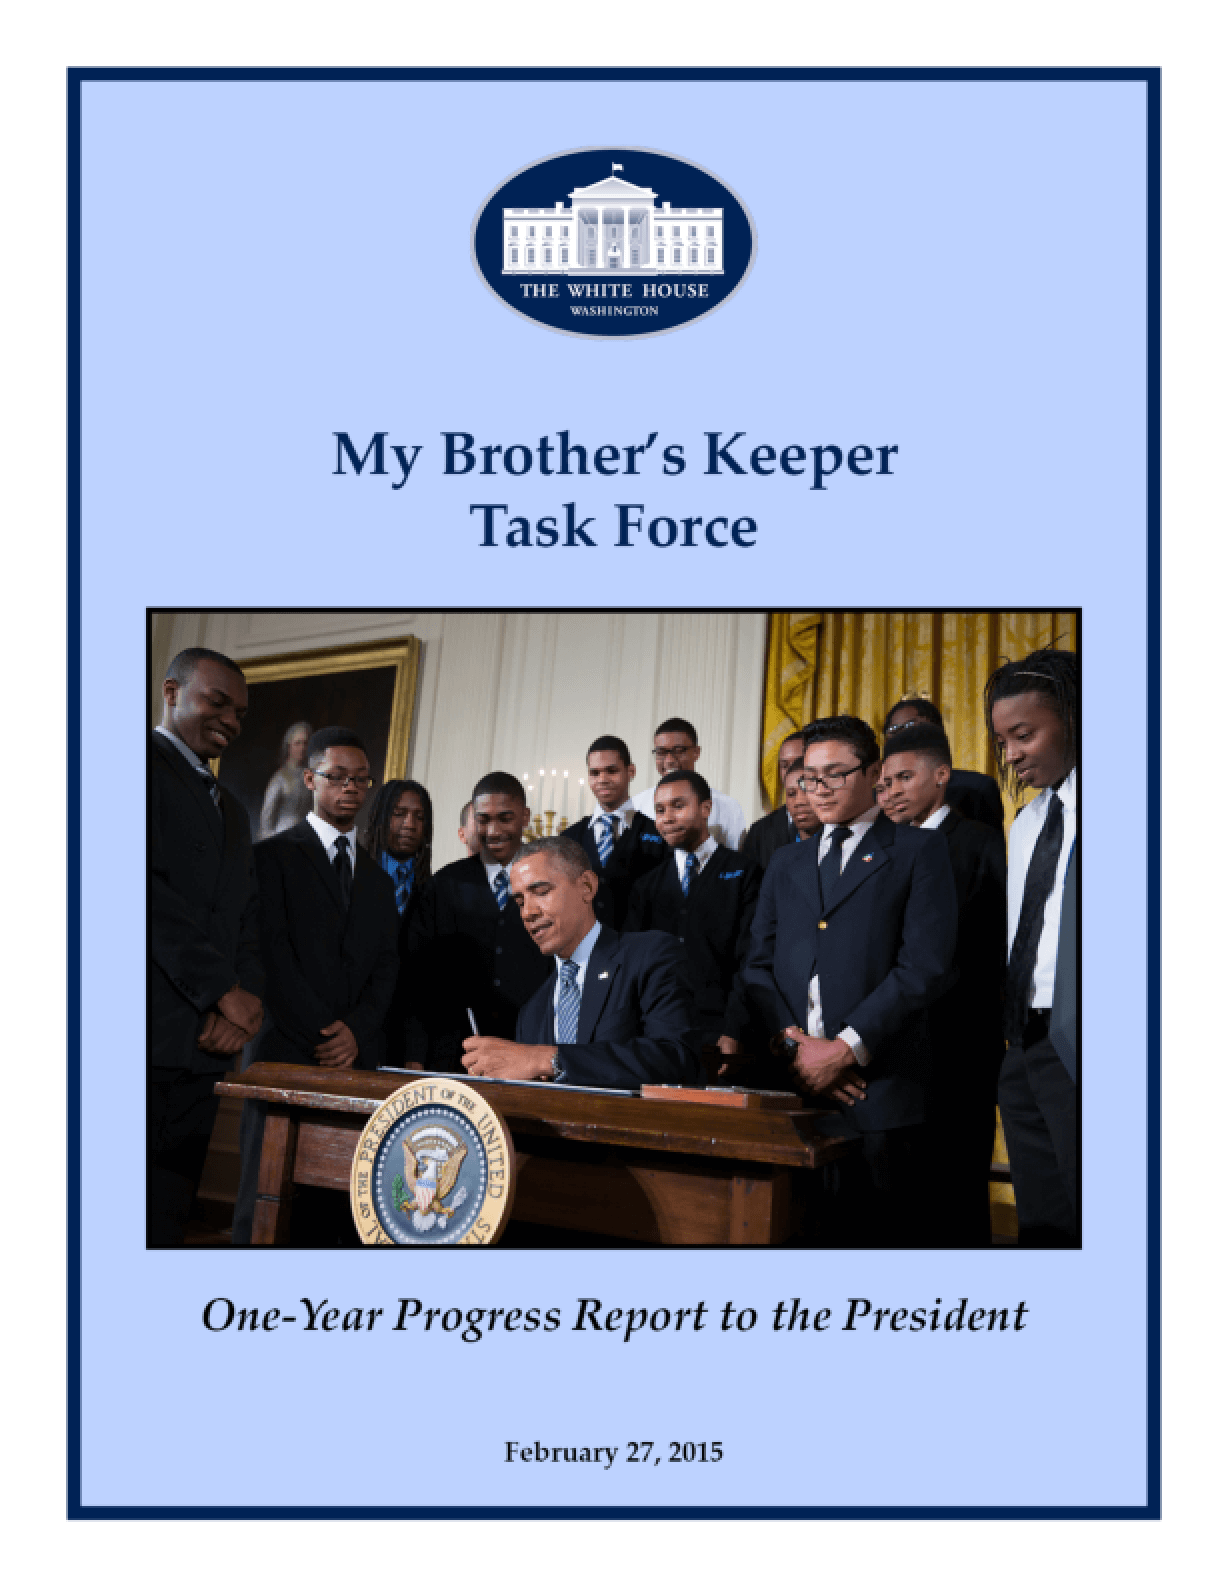 My Brother's Keeper Task Force: One-Year Progress Report to the President